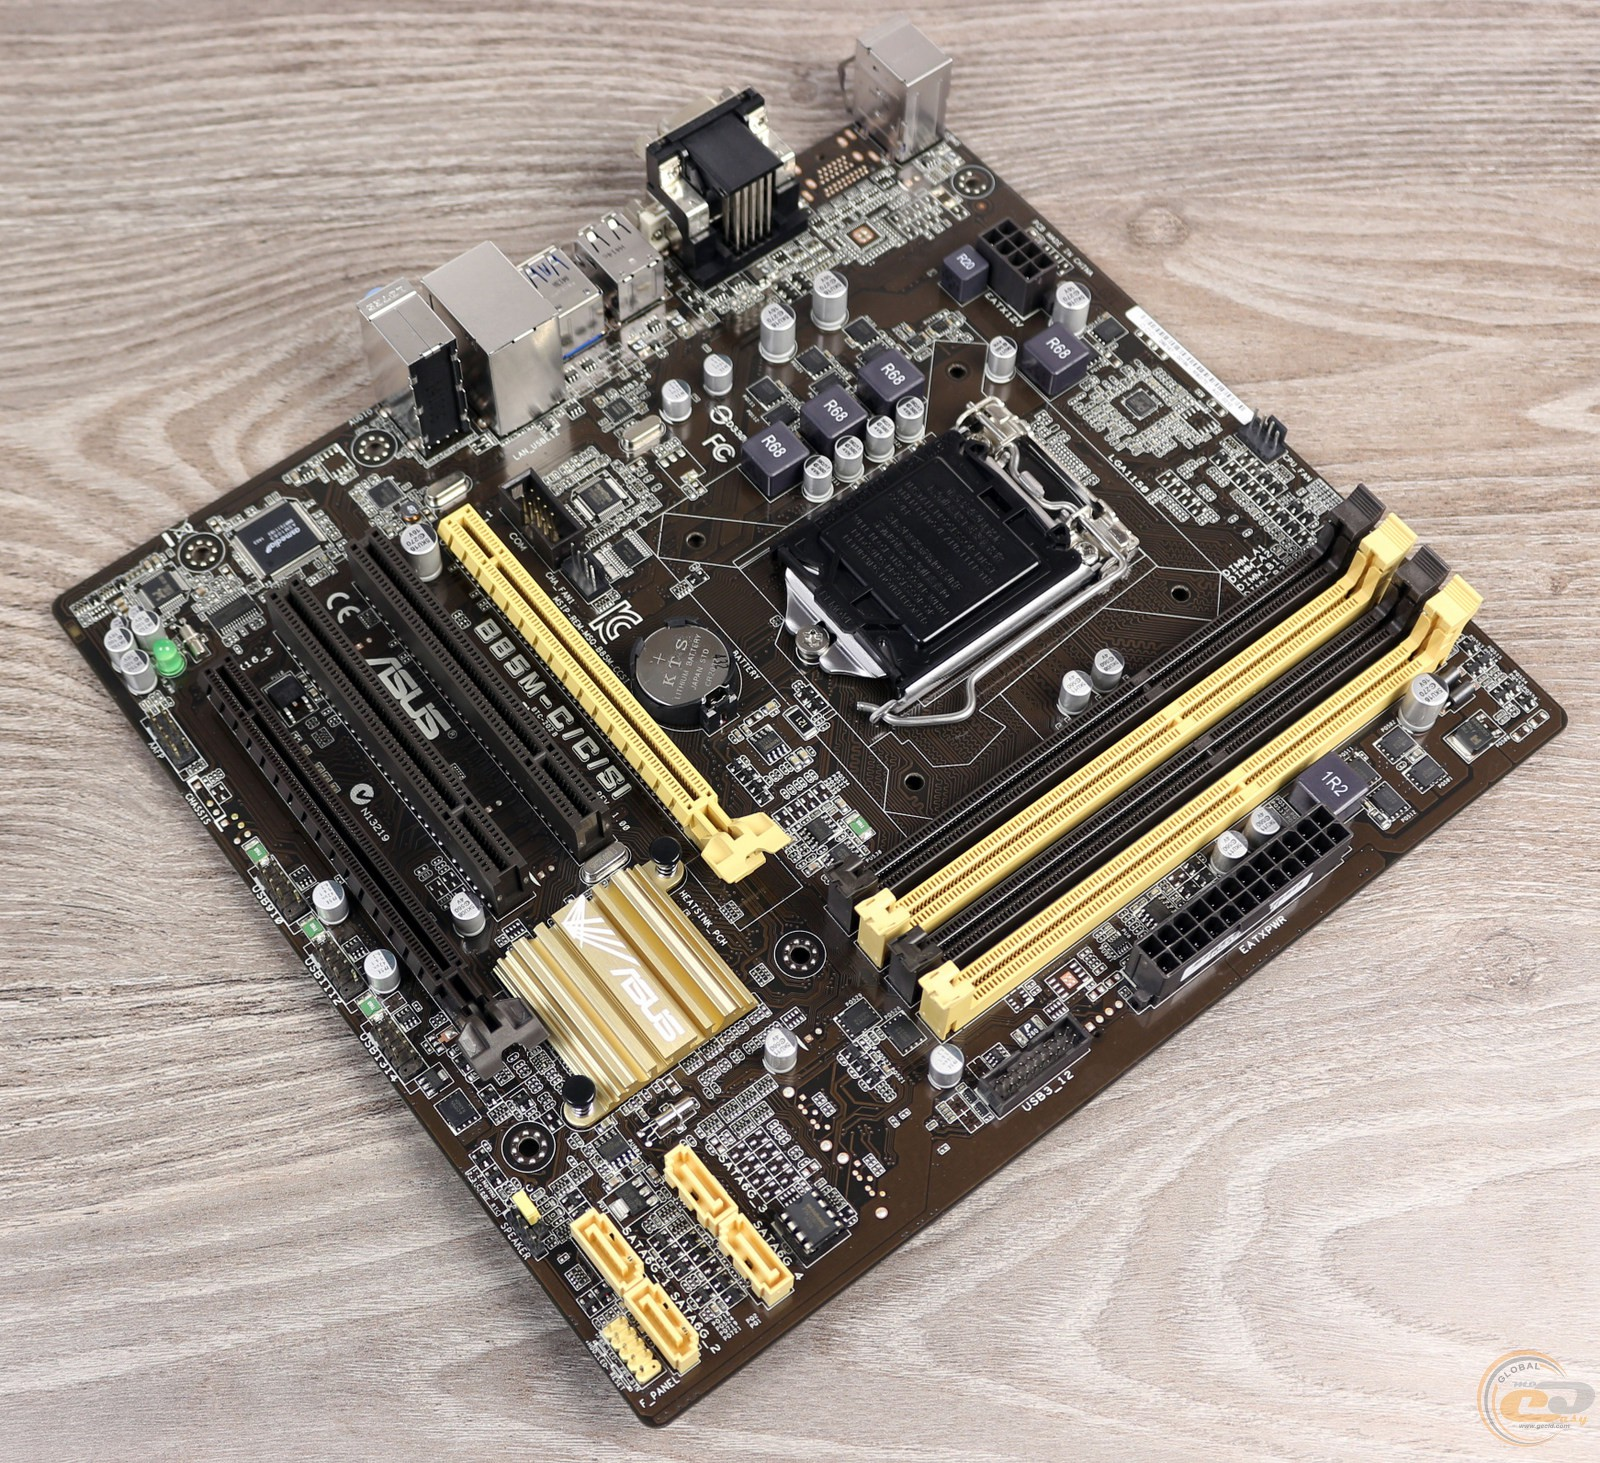 DRIVERS FOR ASUS B85M-CC